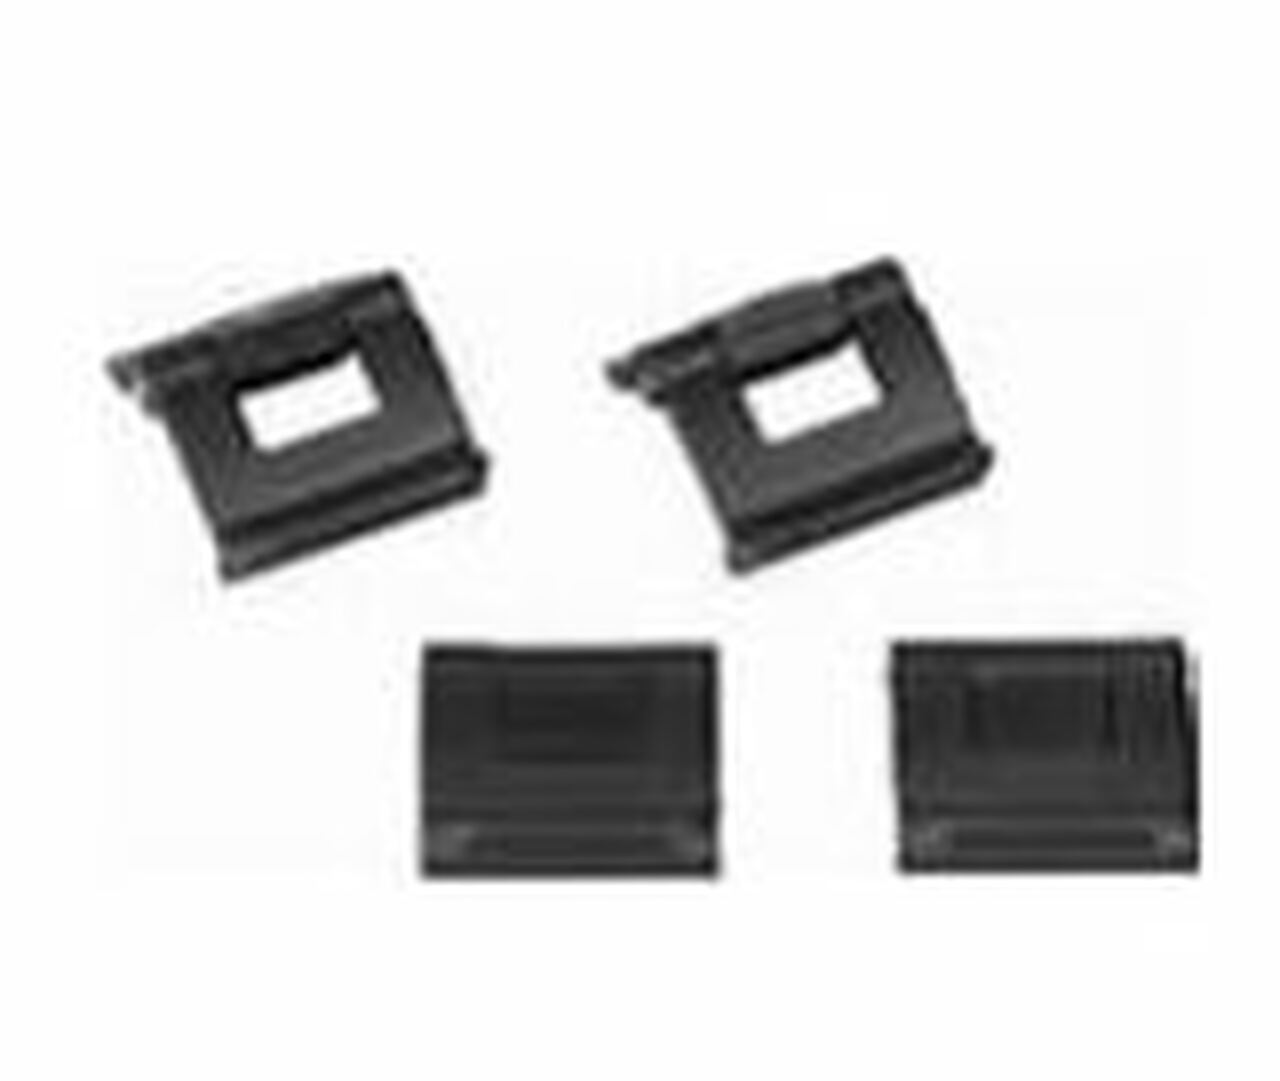 Cigar Caddy 40 Count Replacement Latches